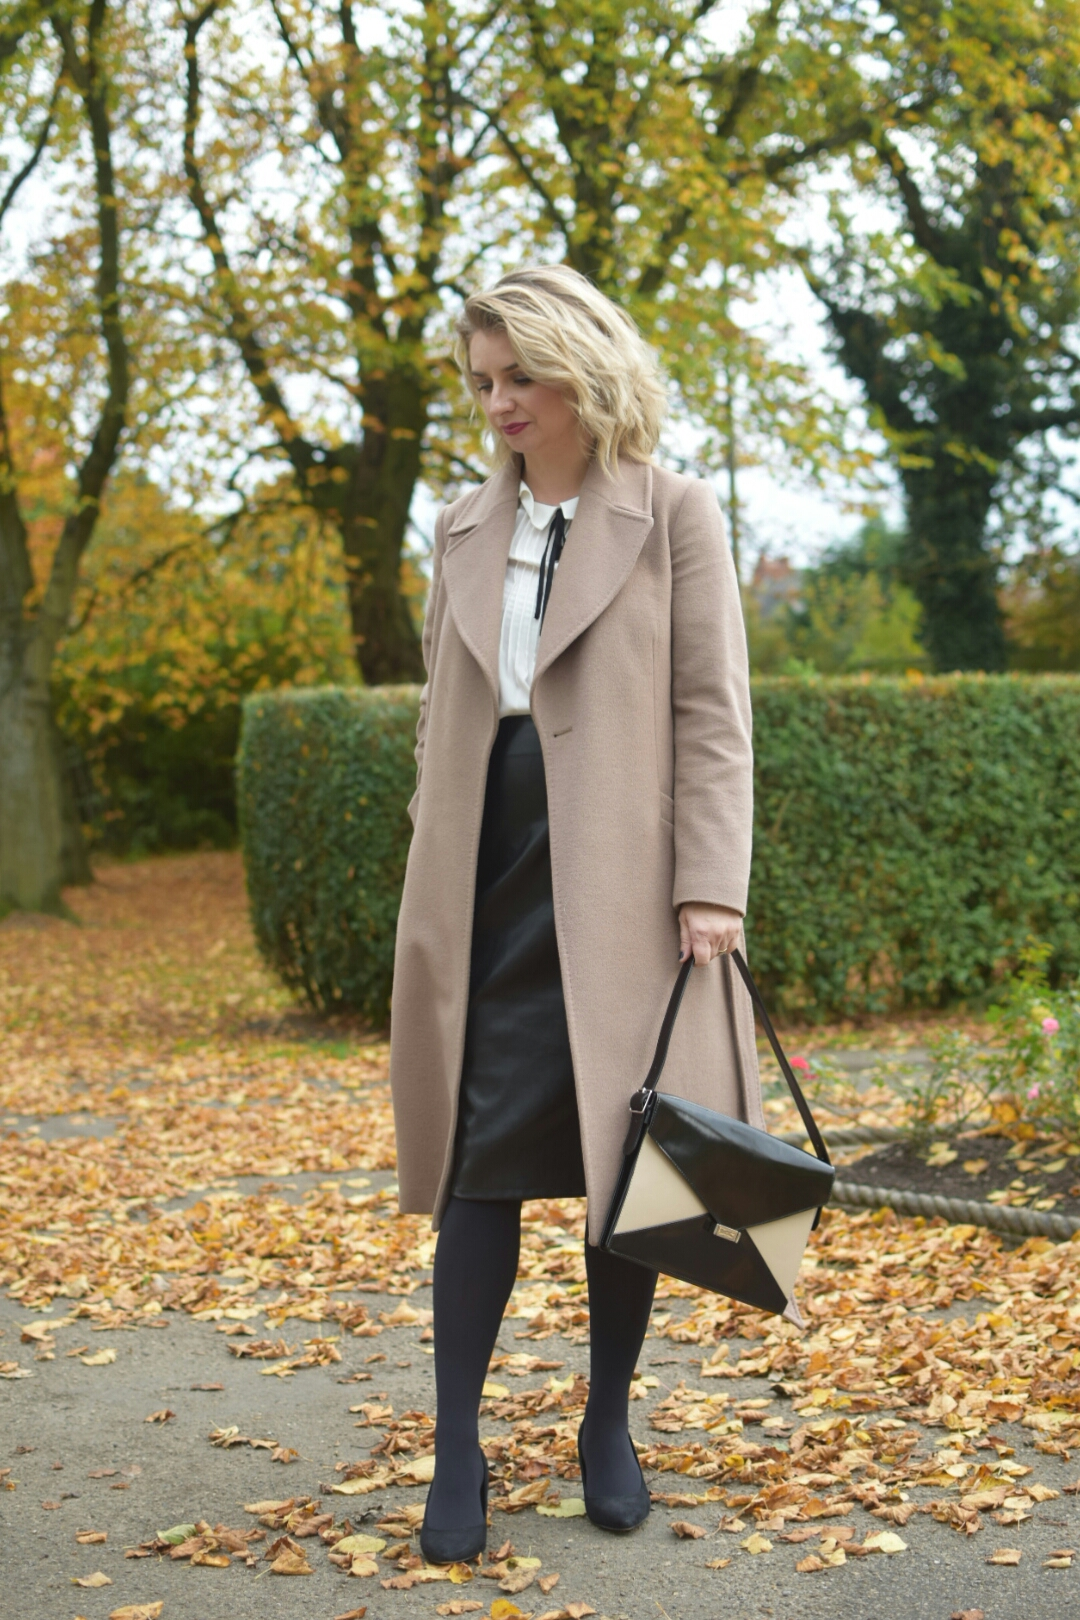 Jaegar Camel Coat, Matalan White blouse with neck tie,Leatherette Pencil Skirt, Carvela Black Court Shoes, and Celine Diamond Shoulder Bag